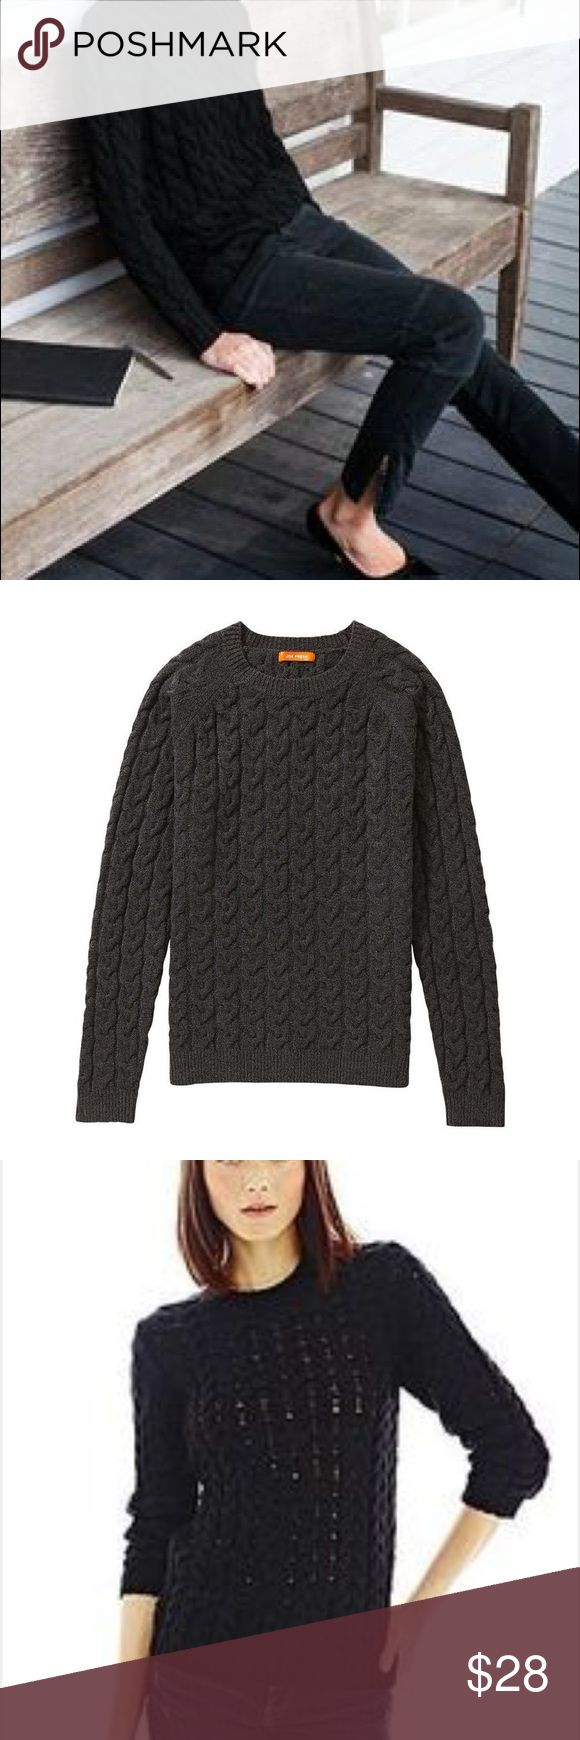 Joe Fresh cable open weave sweater! Light and fluffy Joe Fresh open weave cable scoop neck sweater! Size Large; 100% acrylic. No damage or stains. Pet free, smoke free home. Joe Fresh Sweaters Crew & Scoop Necks